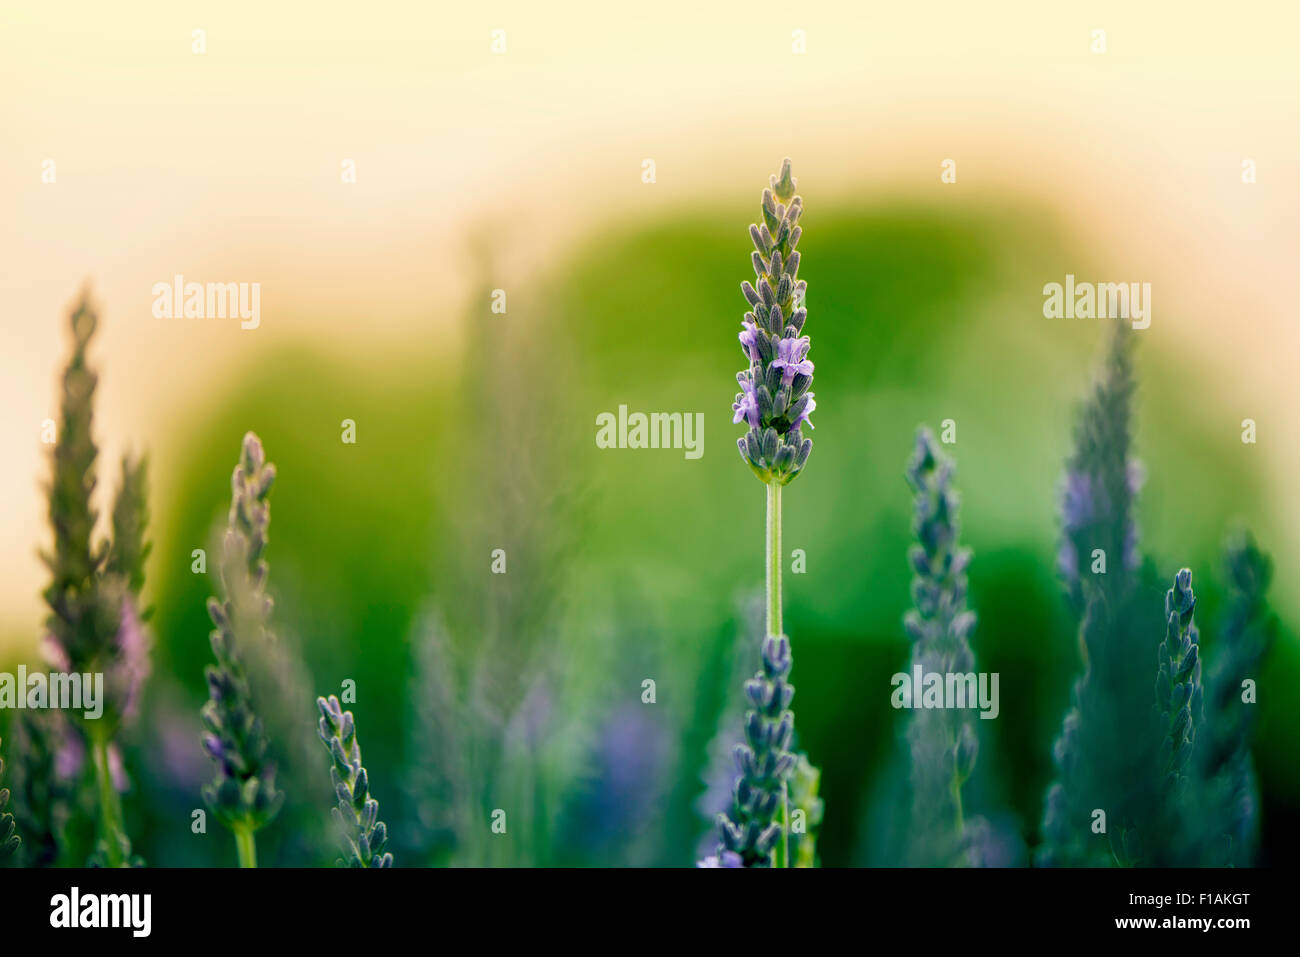 Lavender field, close-up - Stock Image